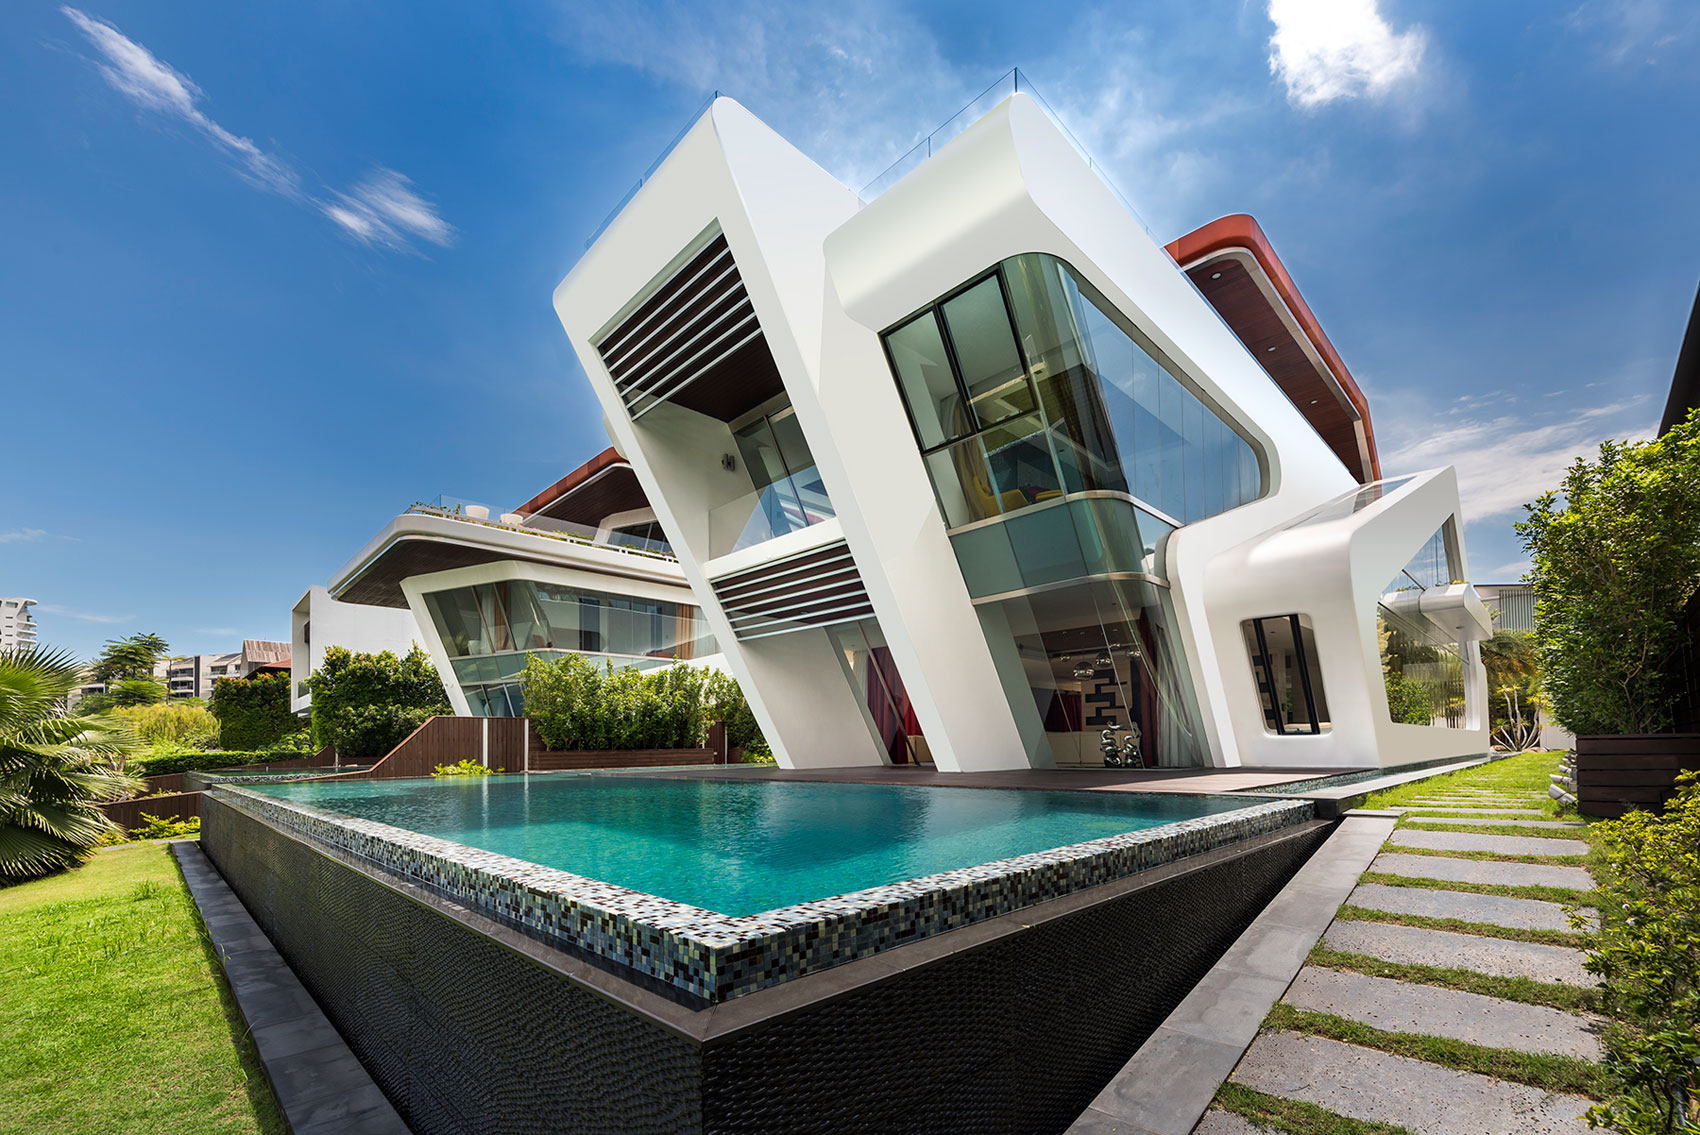 Mercurio design lab create a modern villa in singapore for Villa moderne